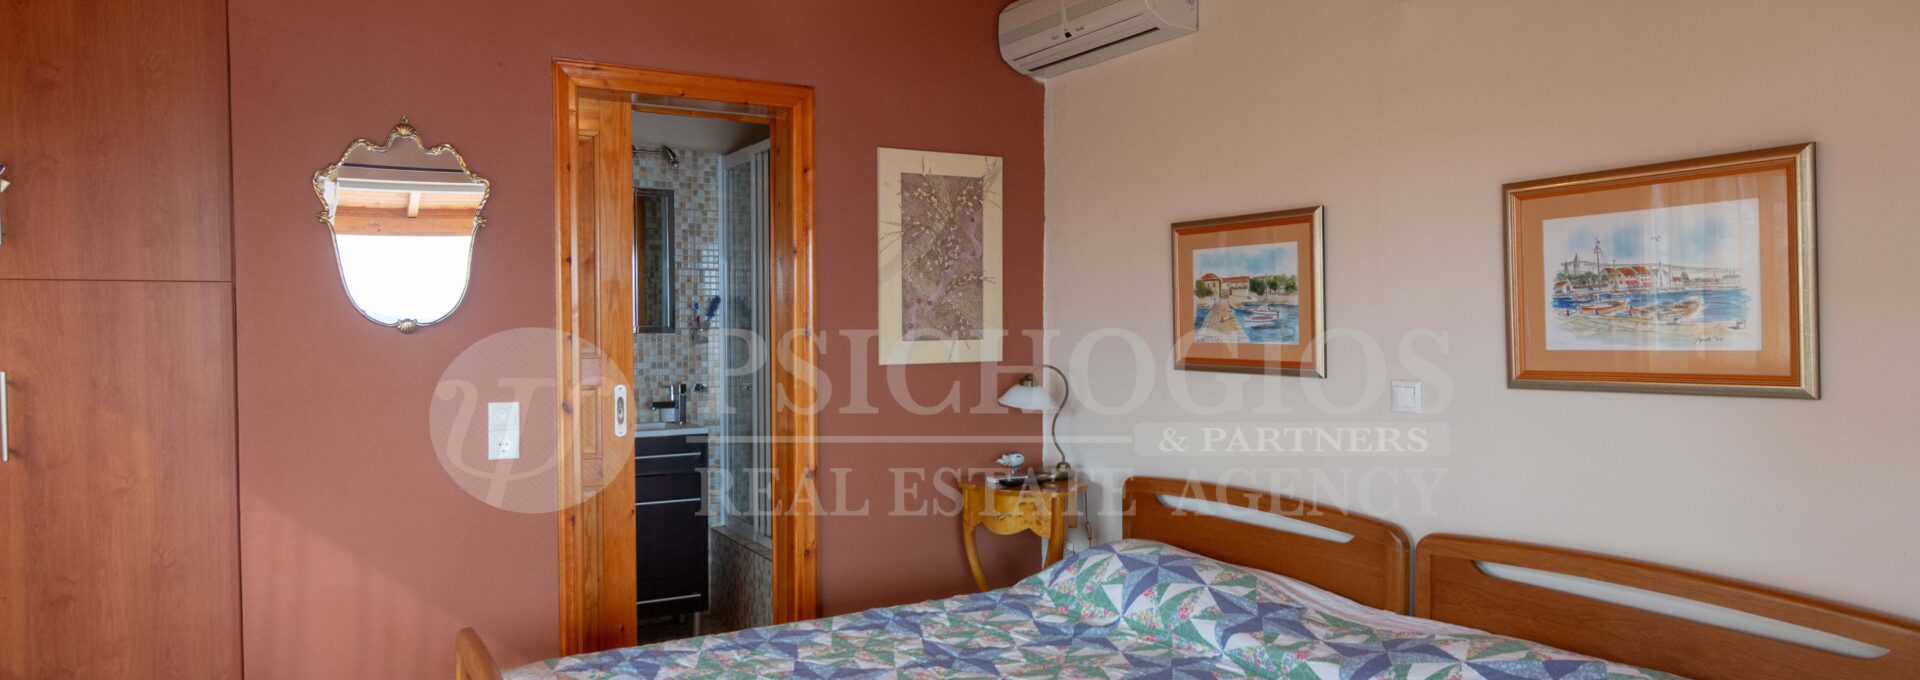 for_sale_house_107_square_meters_3_bedrooms_sea_view_ermioni_greece 1 1 (24)